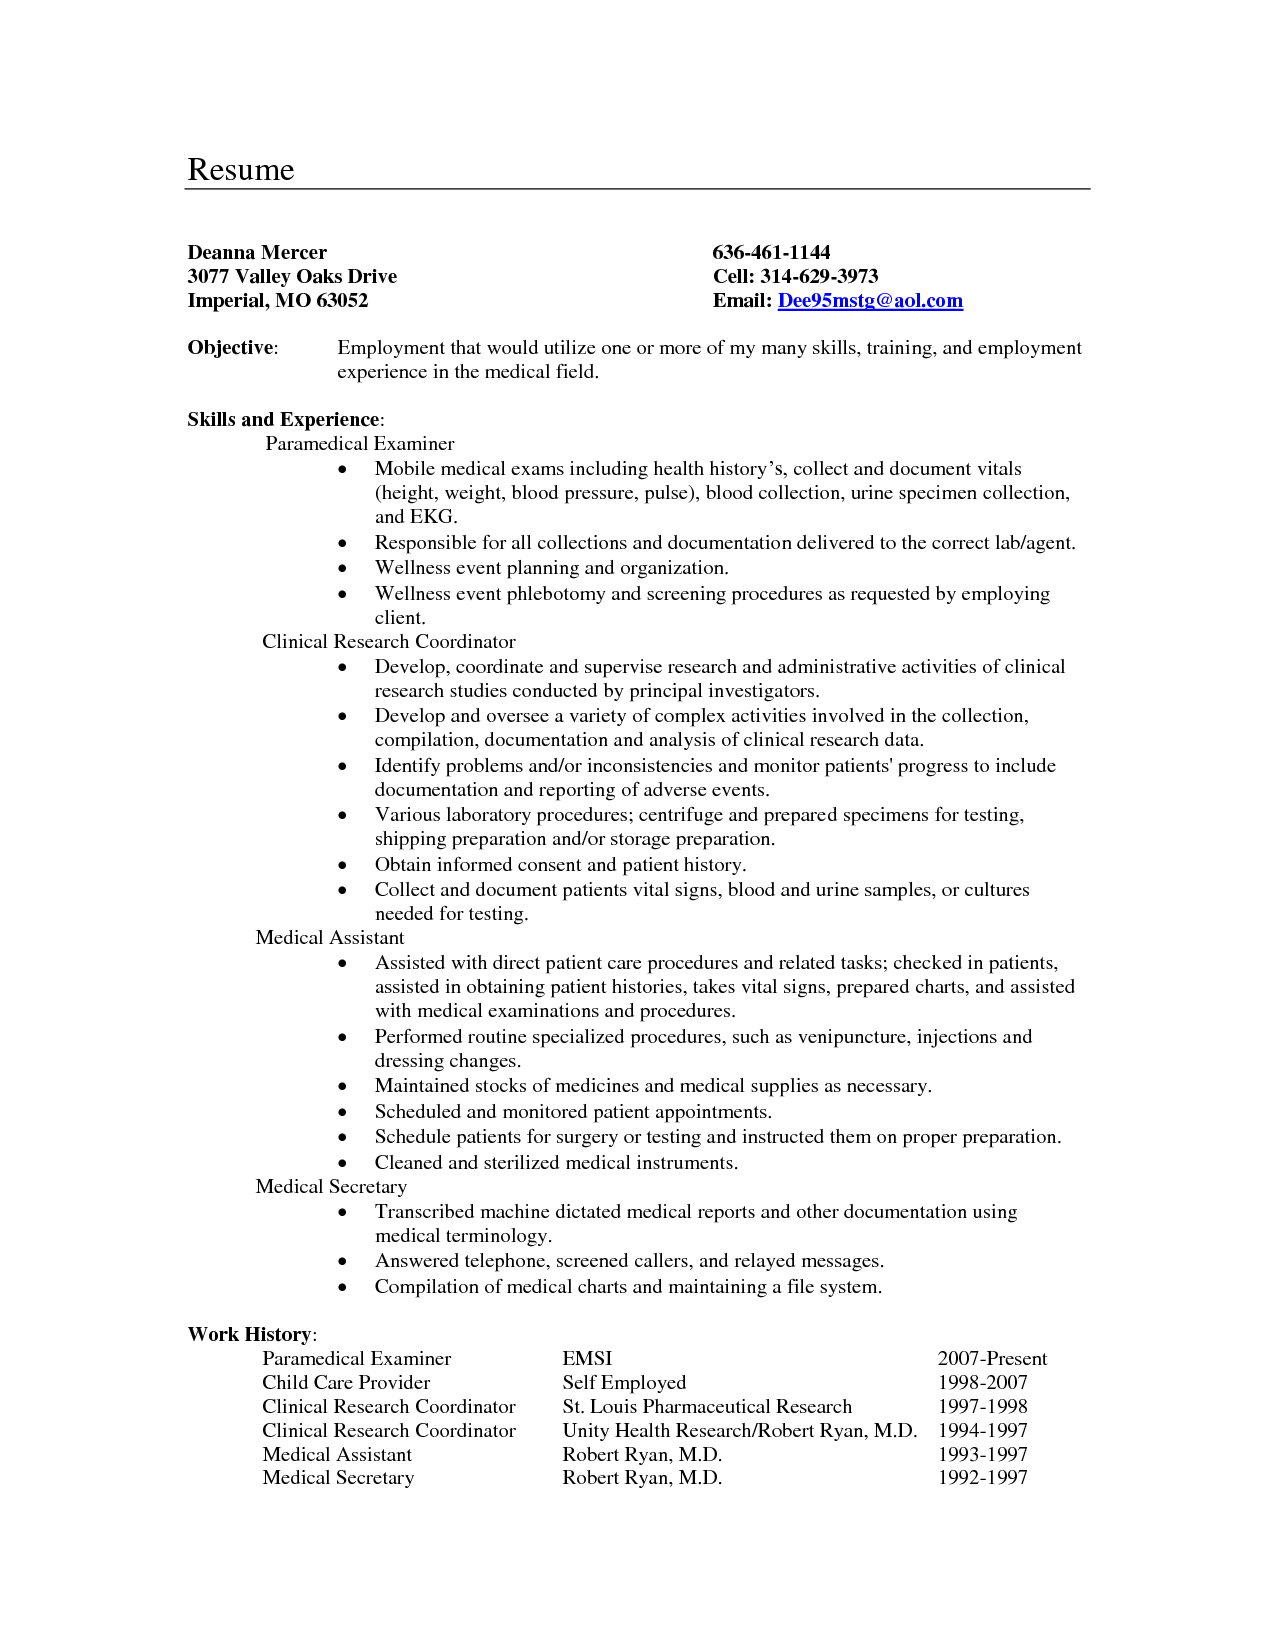 Medical Secretary Resume Objective Examples | Resumes | Pinterest ...